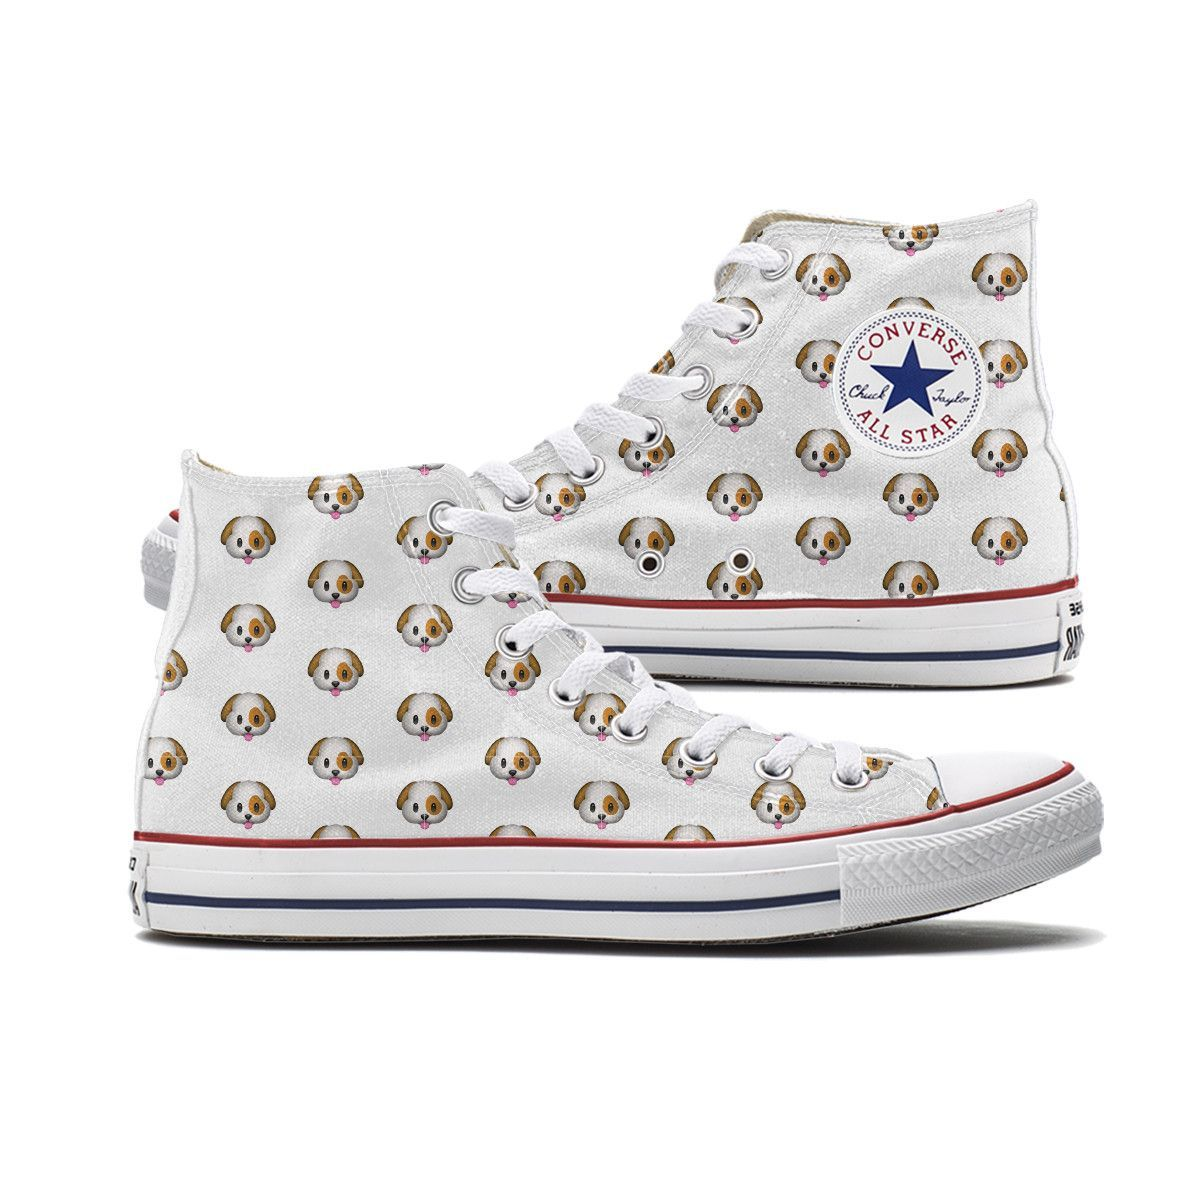 cceb4375c886 Converse Dog Emoji High Top Chucks are finally here! Dog lovers can now  where their love of dogs on their feet. Each shoe is covered with a classic  dog ...